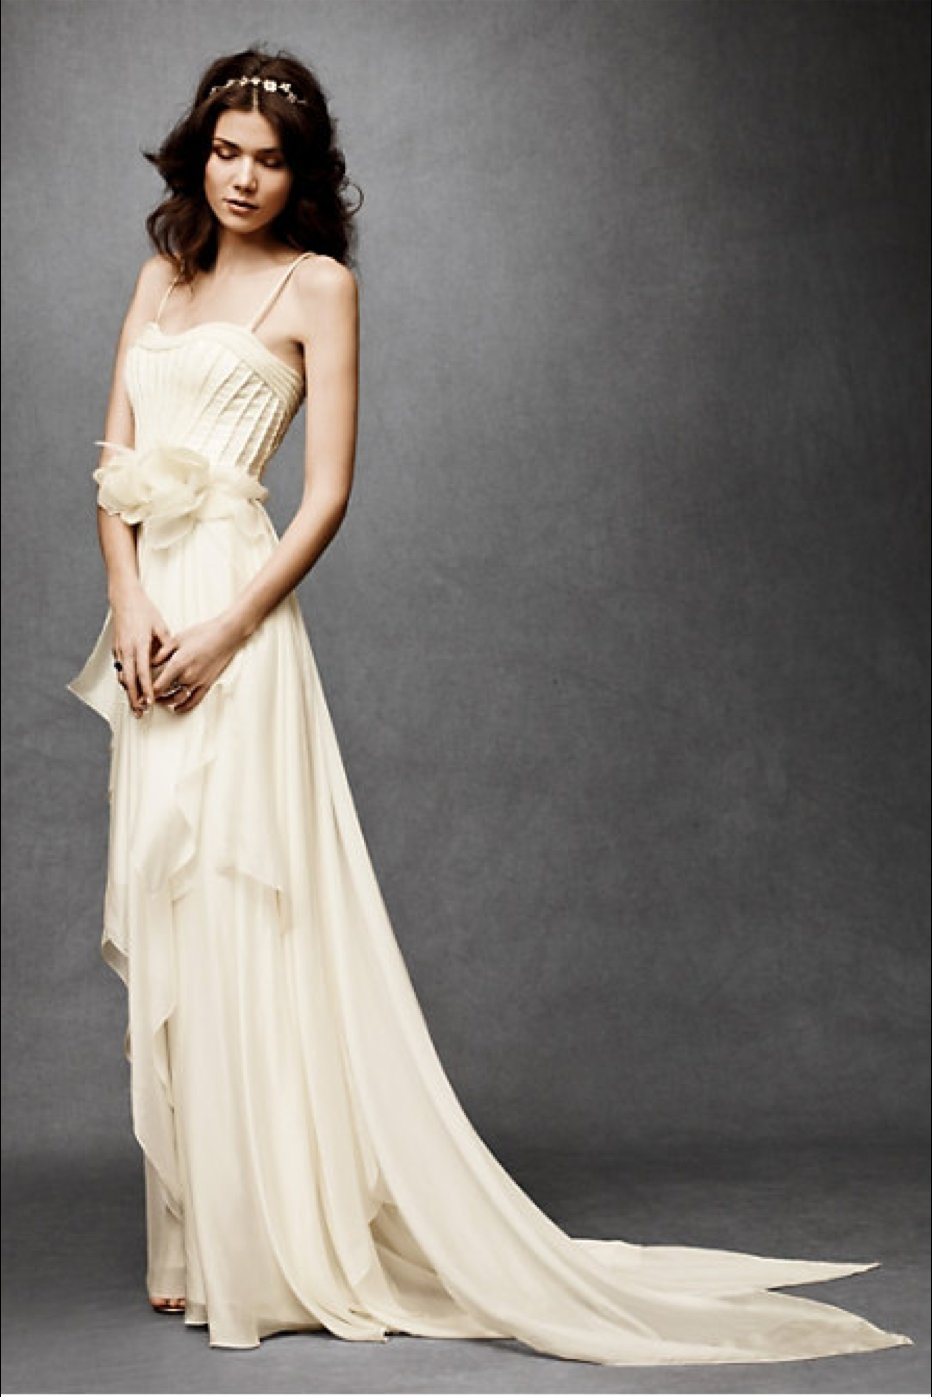 grecian inspired beach wedding dress by bhldn grecian style wedding dress Grecian inspired beach wedding dress by BHLDN